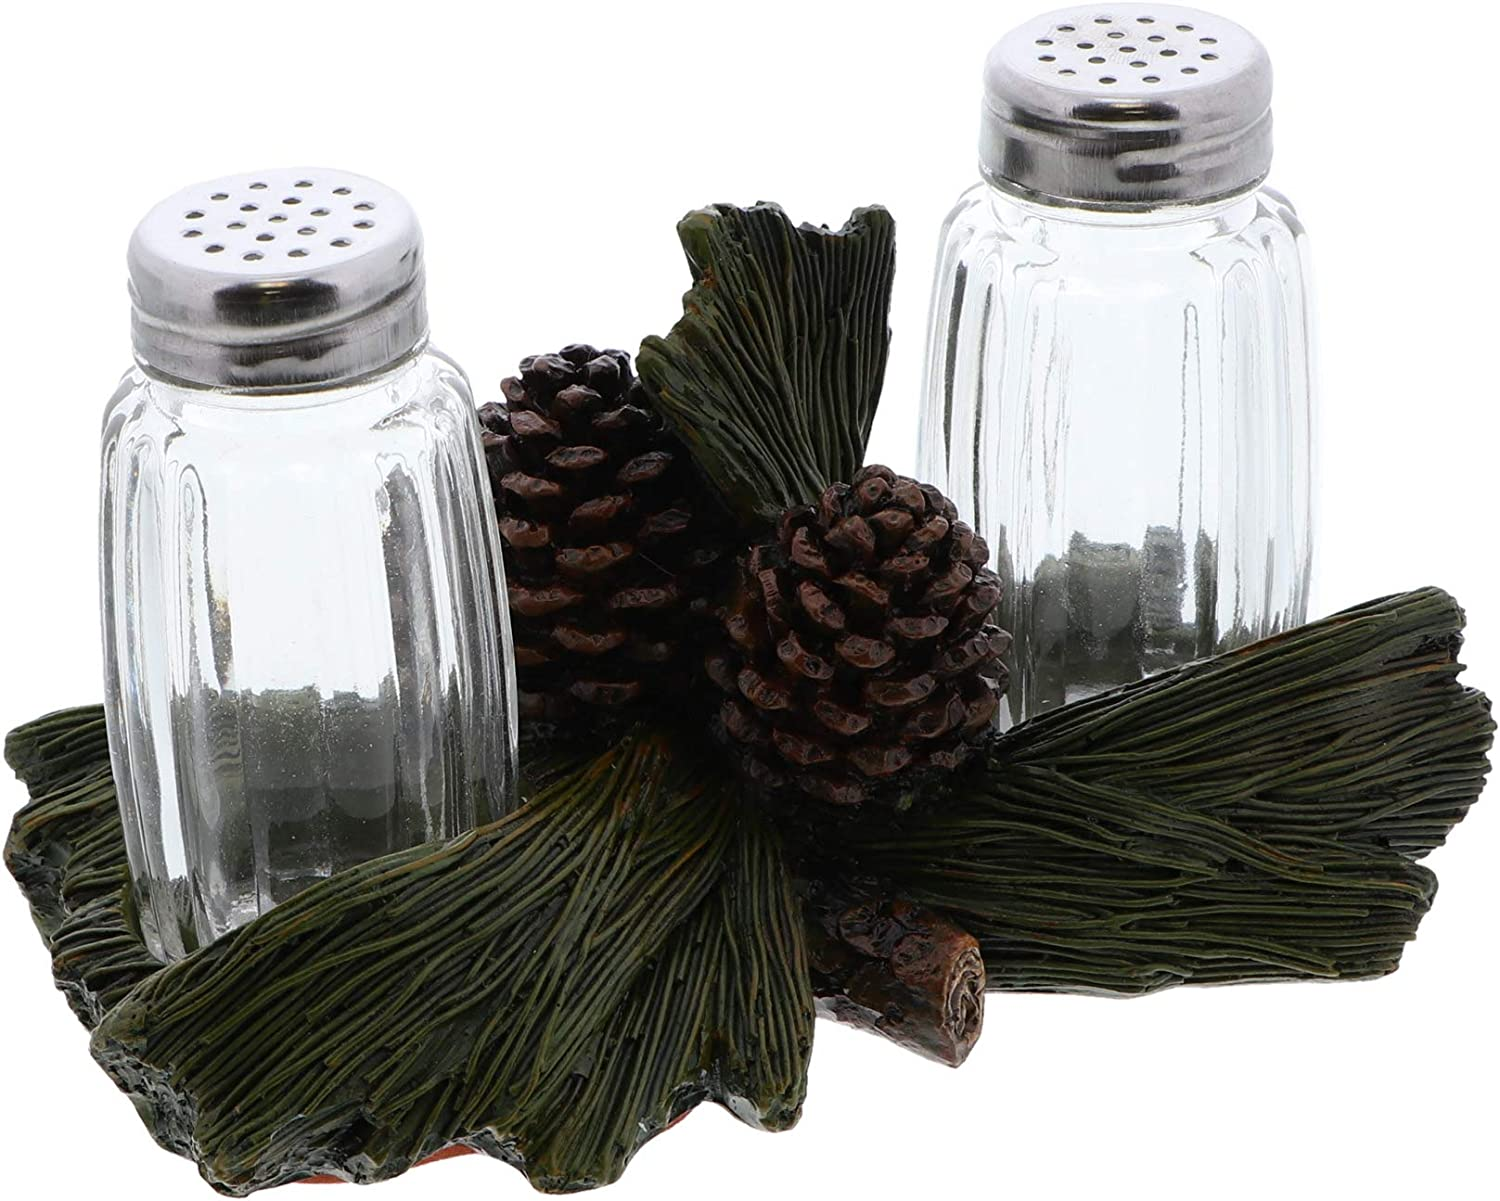 Rustic Kitchen Décor Salt and Pepper Shaker Sets - Pinecone and Leaves